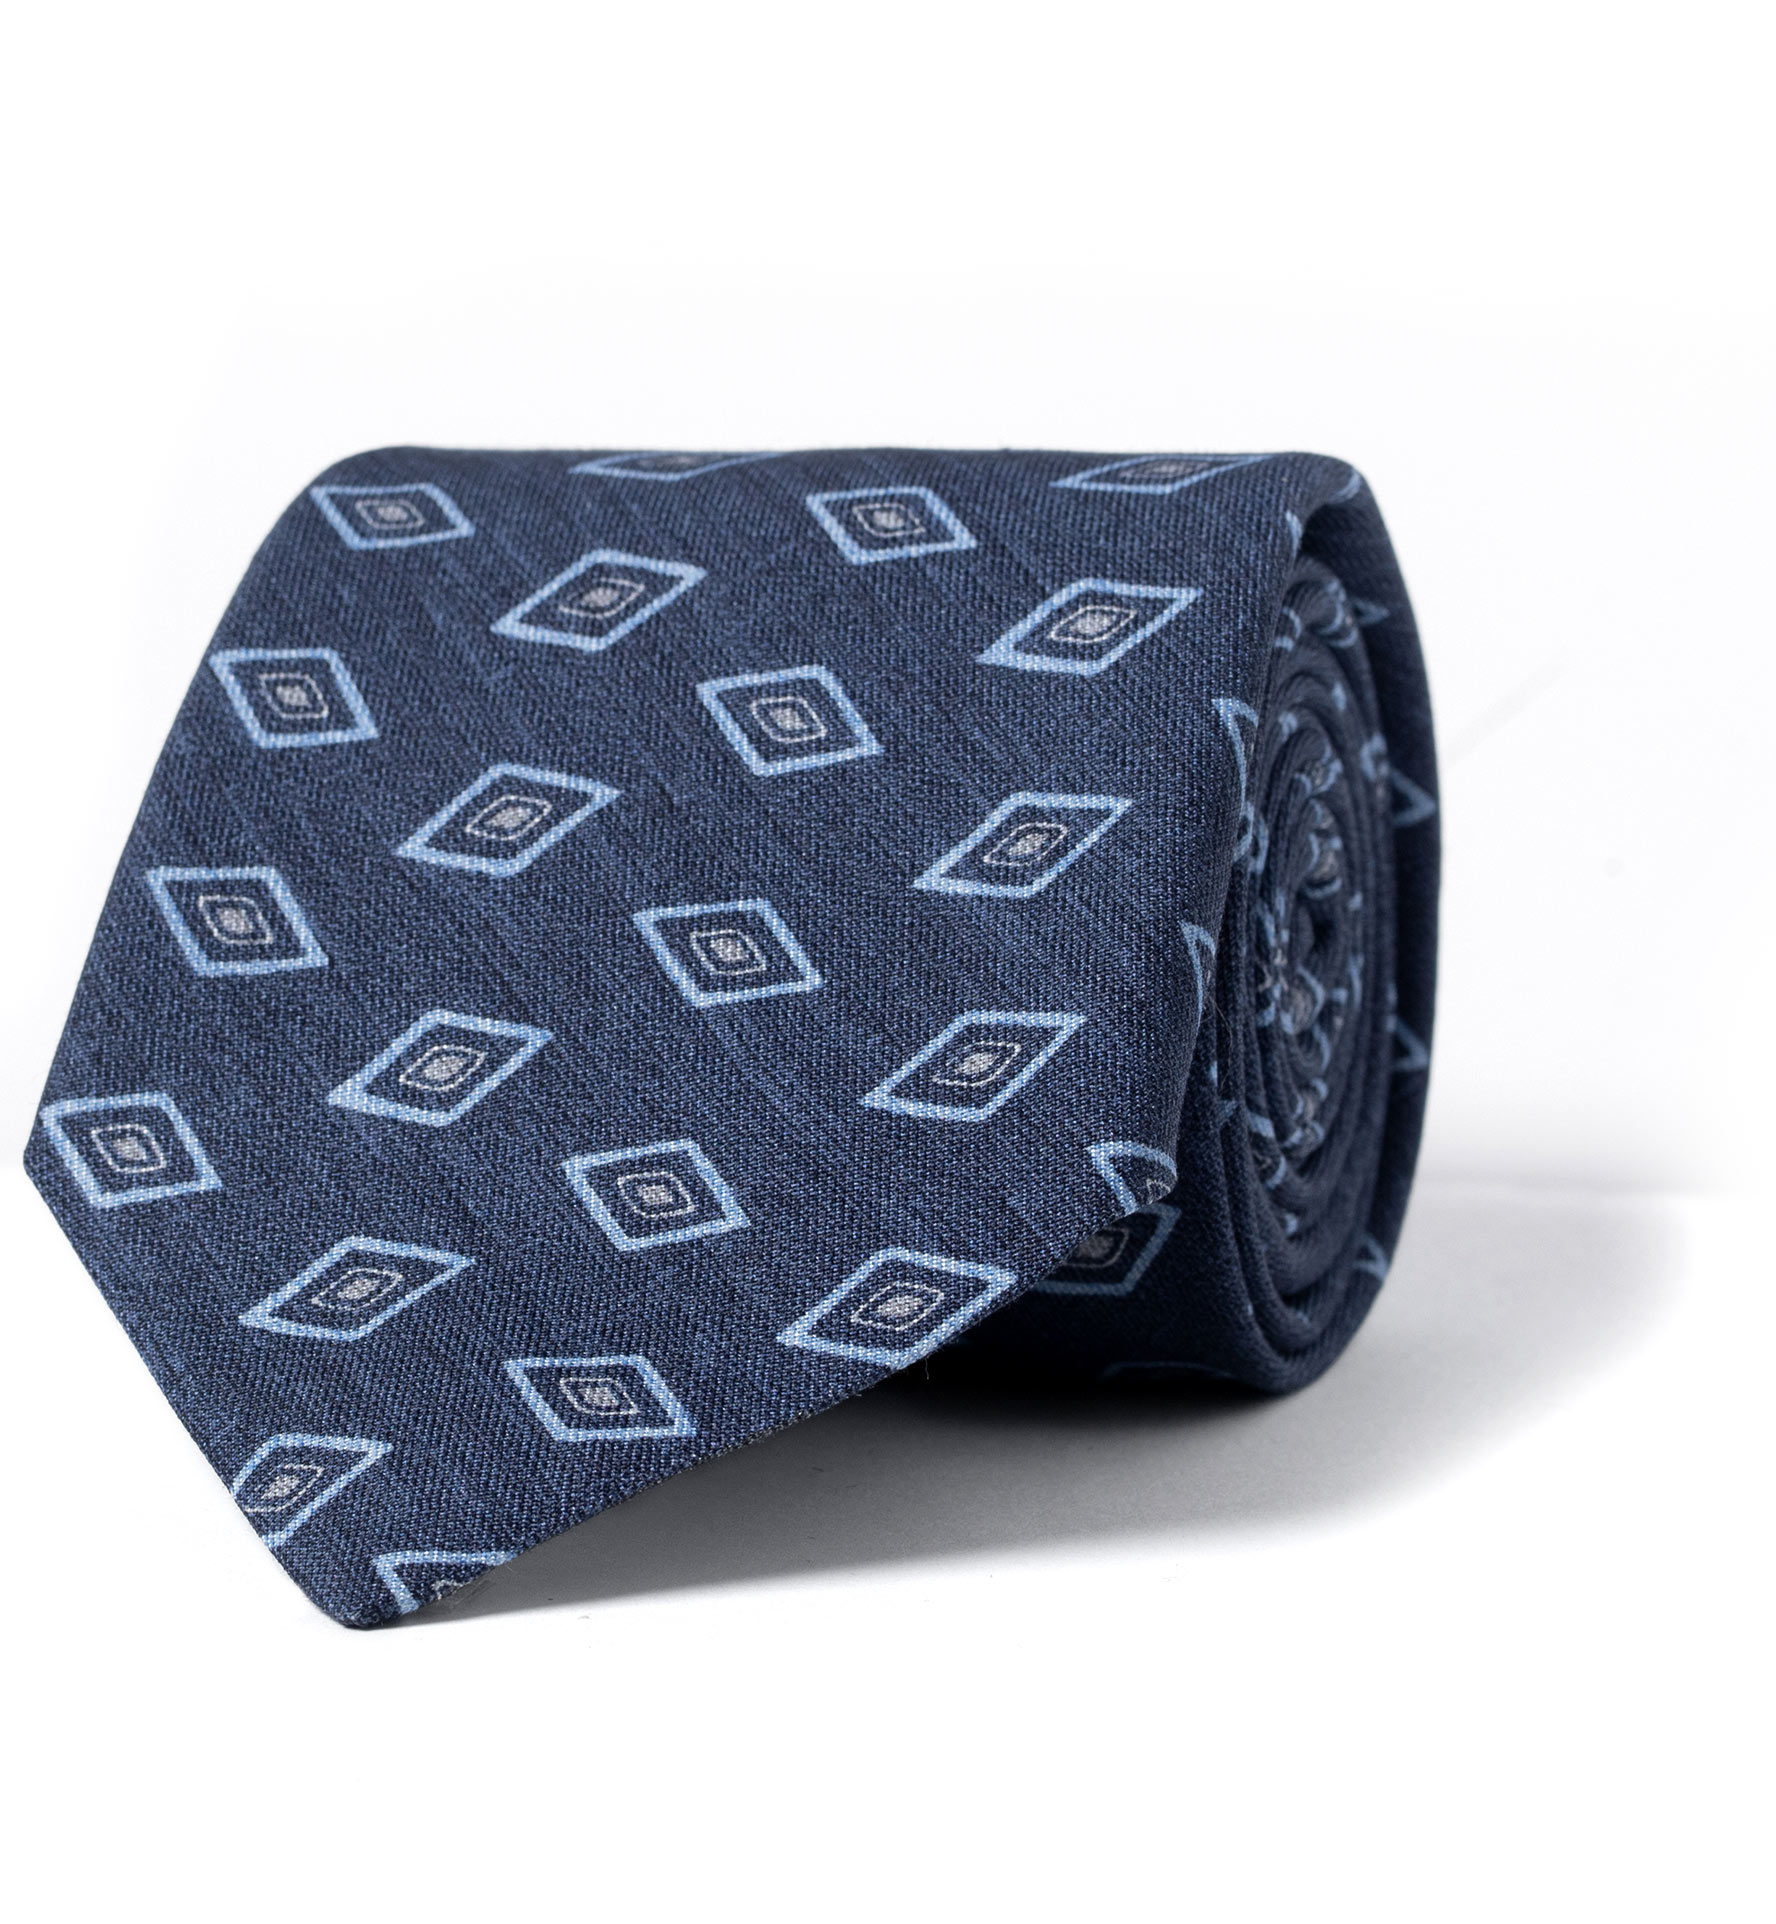 Zoom Image of Faded Navy Rhombus Print Cotton and Silk Tie